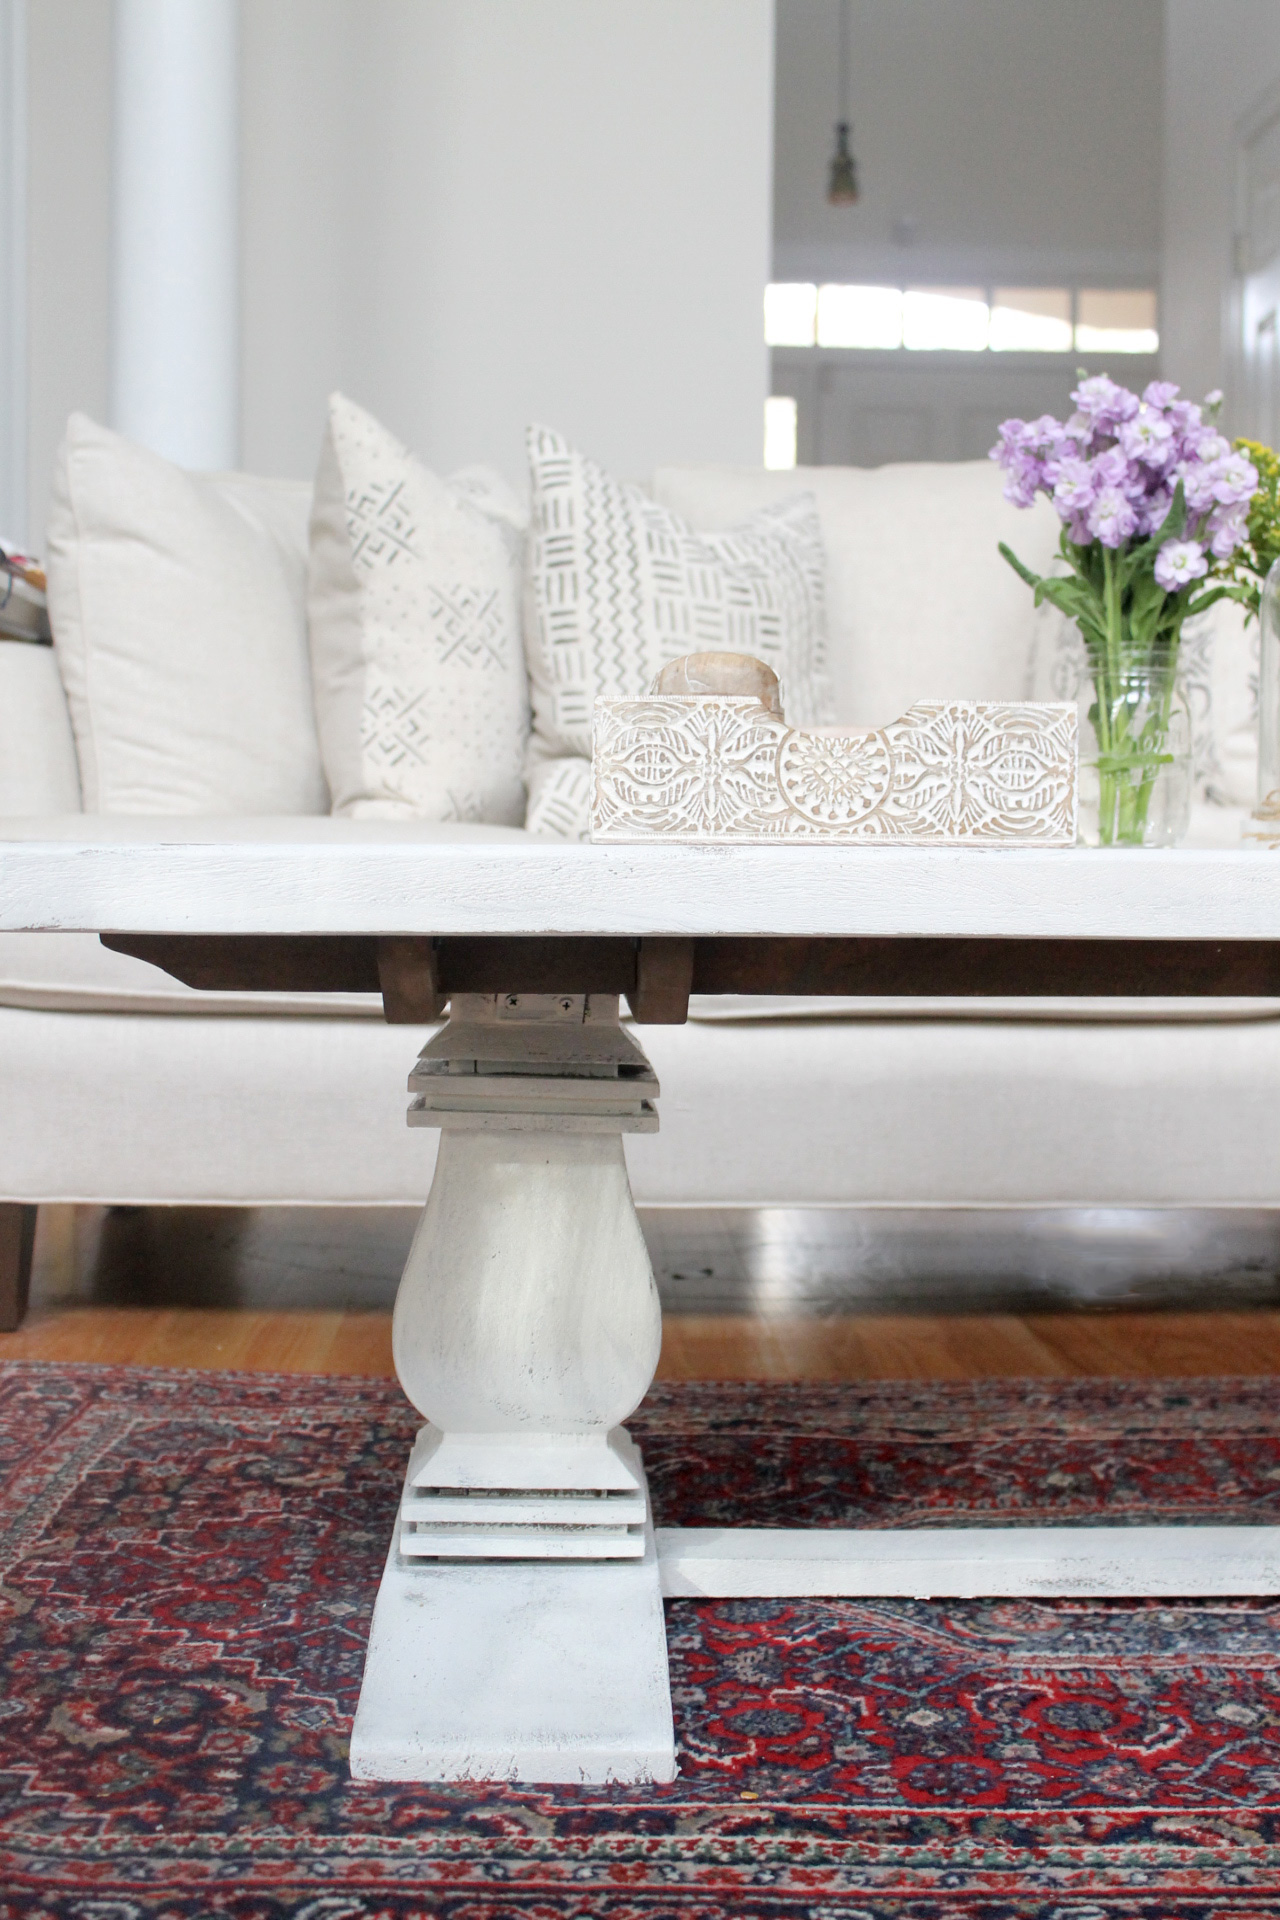 How to Distress A Shabby Chic Coffee Table (the Easy Way!) by NC blogger Glitter, Inc.